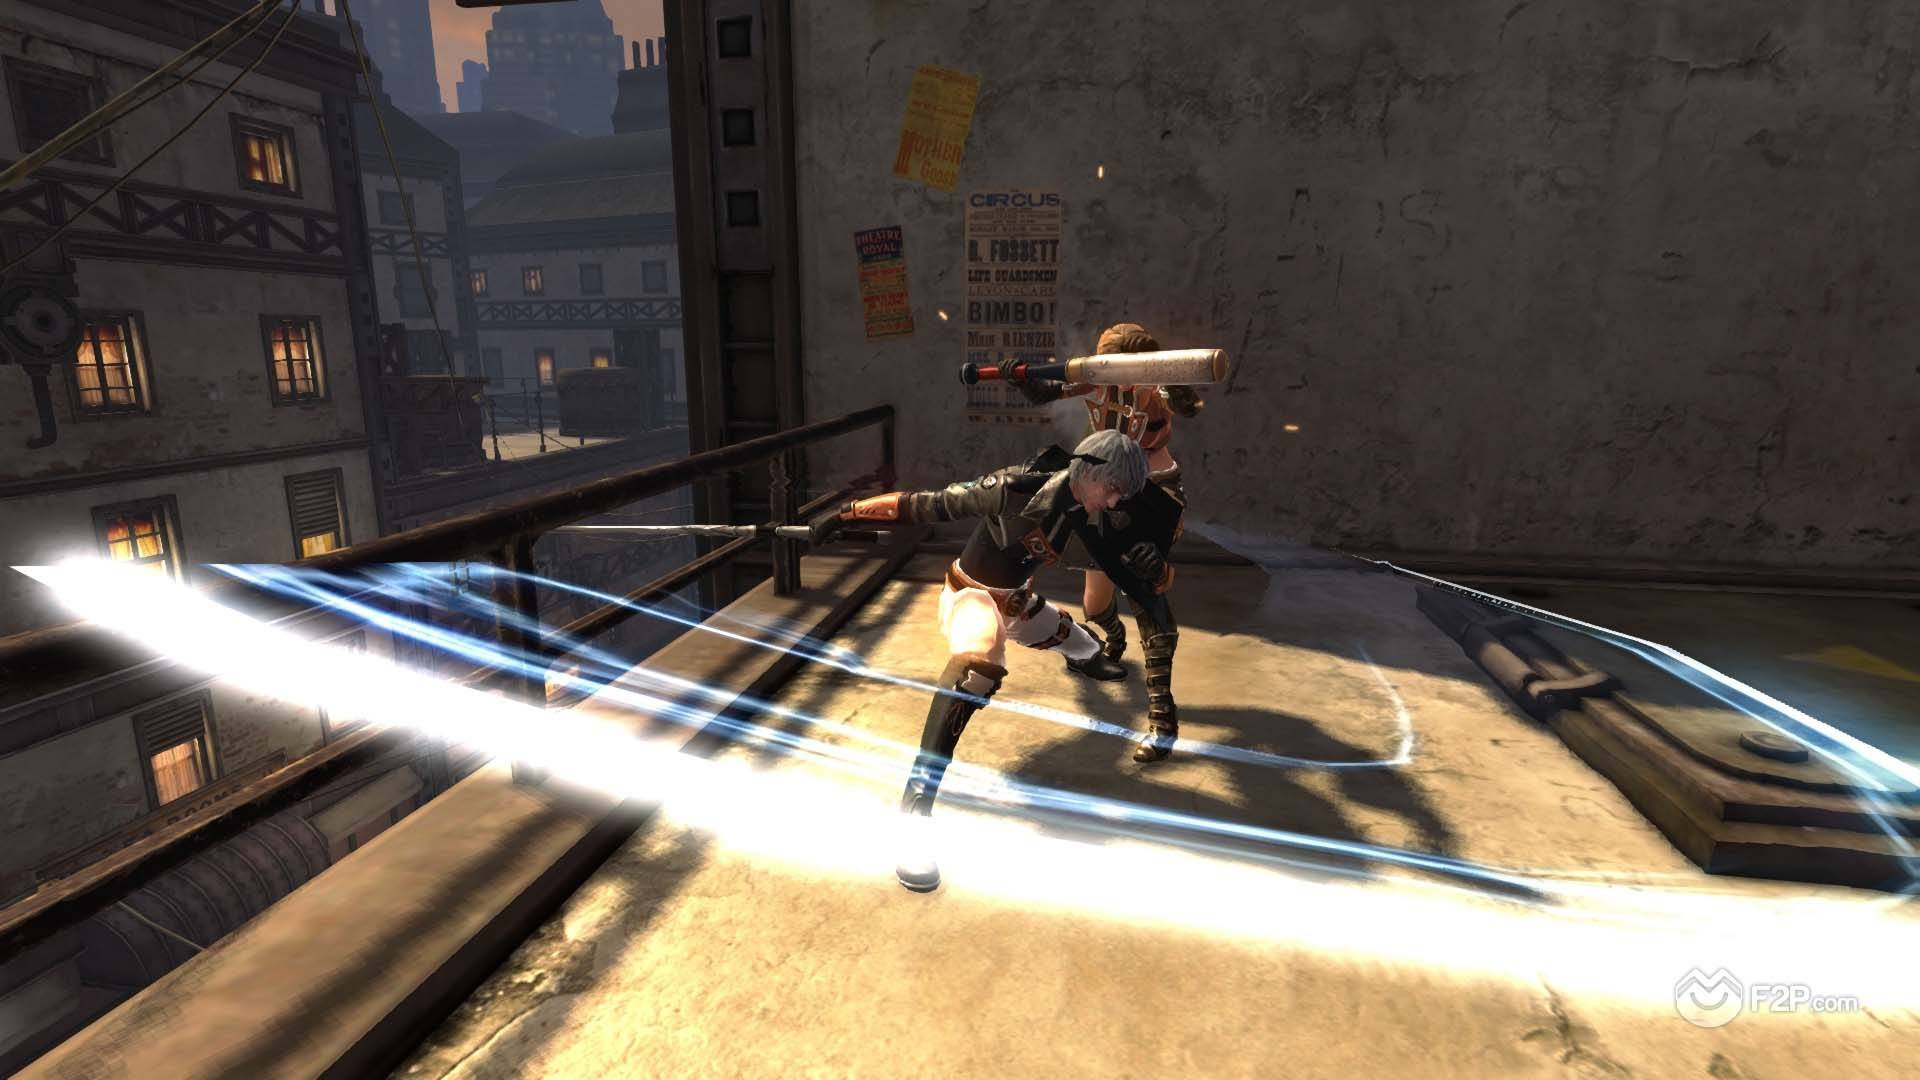 Gunz 2 the second duel closed beta key giveaways